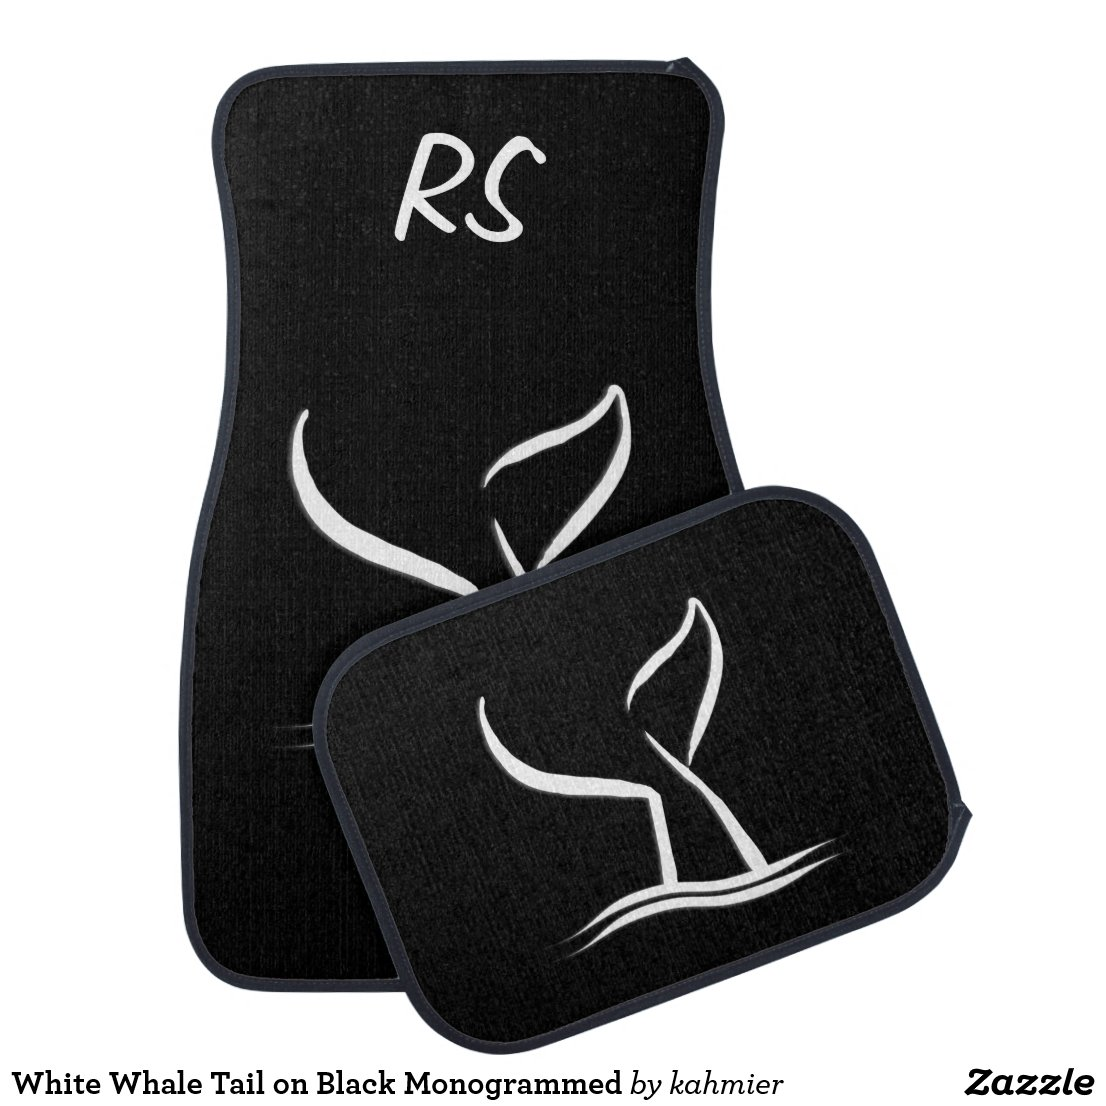 White Whale Tail on Black Monogrammed Car Mat